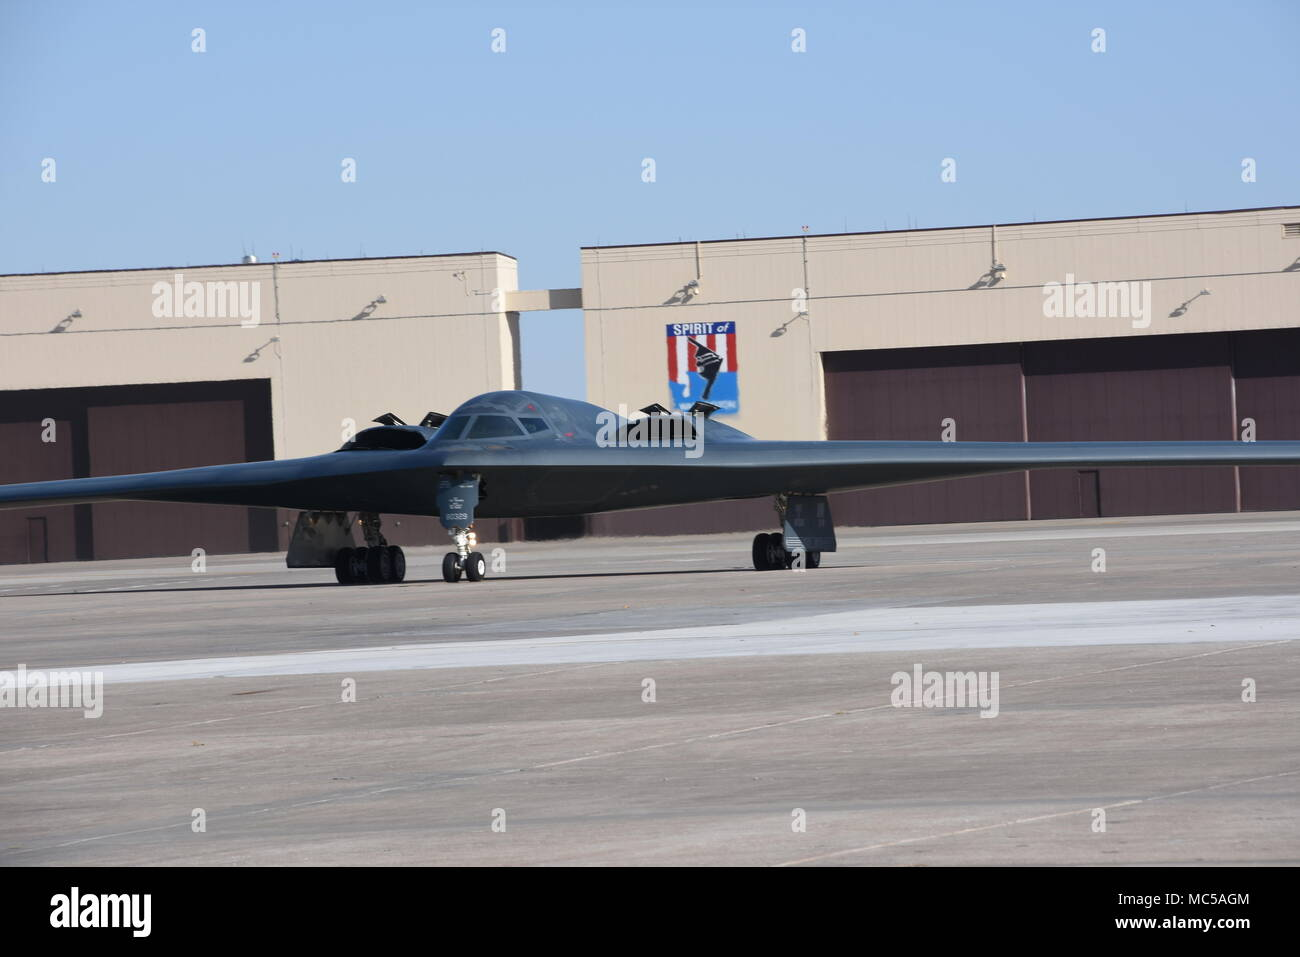 The Spirit of Missouri, the B-2 Flagship of the Missouri Air National Guard's 131st Bomb Wing, returns from a recent training mission, at Whiteman Air Force Base, Missouri, Feb 25, 2018. (U.S. Air National Guard photo by Senior Master Sgt. Mary-Dale Amison) Stock Photo